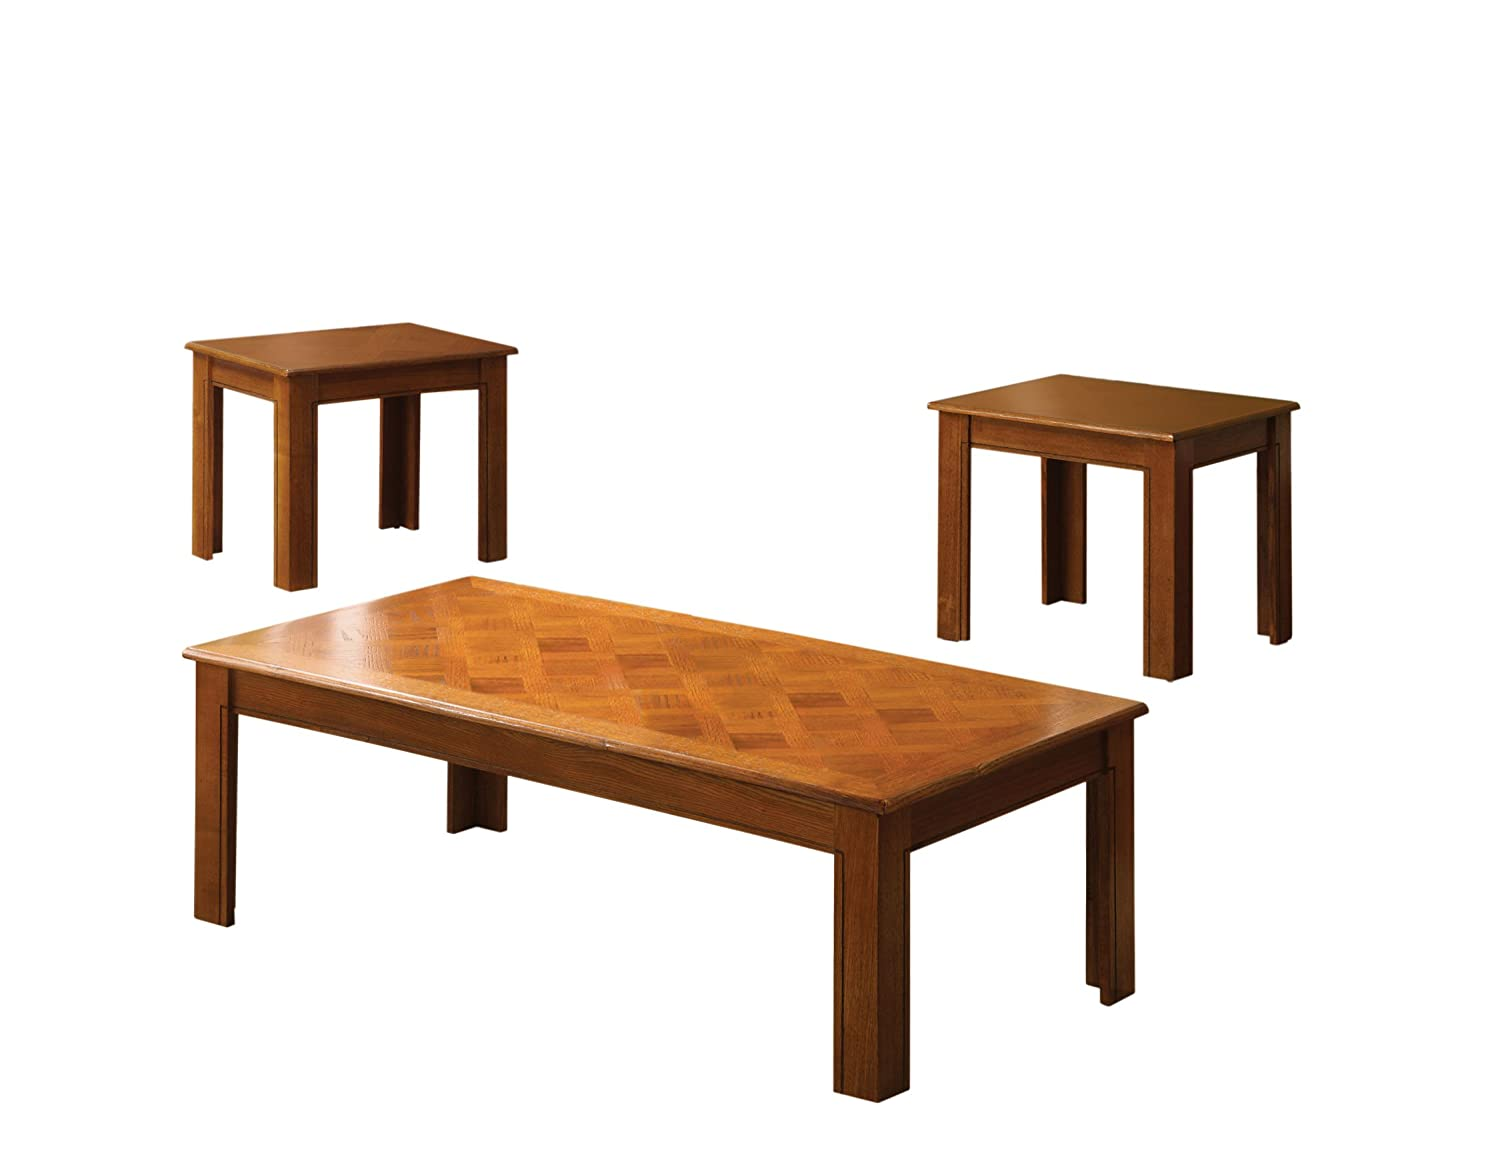 Amazon furniture of america stanton 3 piece coffee table and amazon furniture of america stanton 3 piece coffee table and end table set medium oak finish kitchen dining geotapseo Choice Image